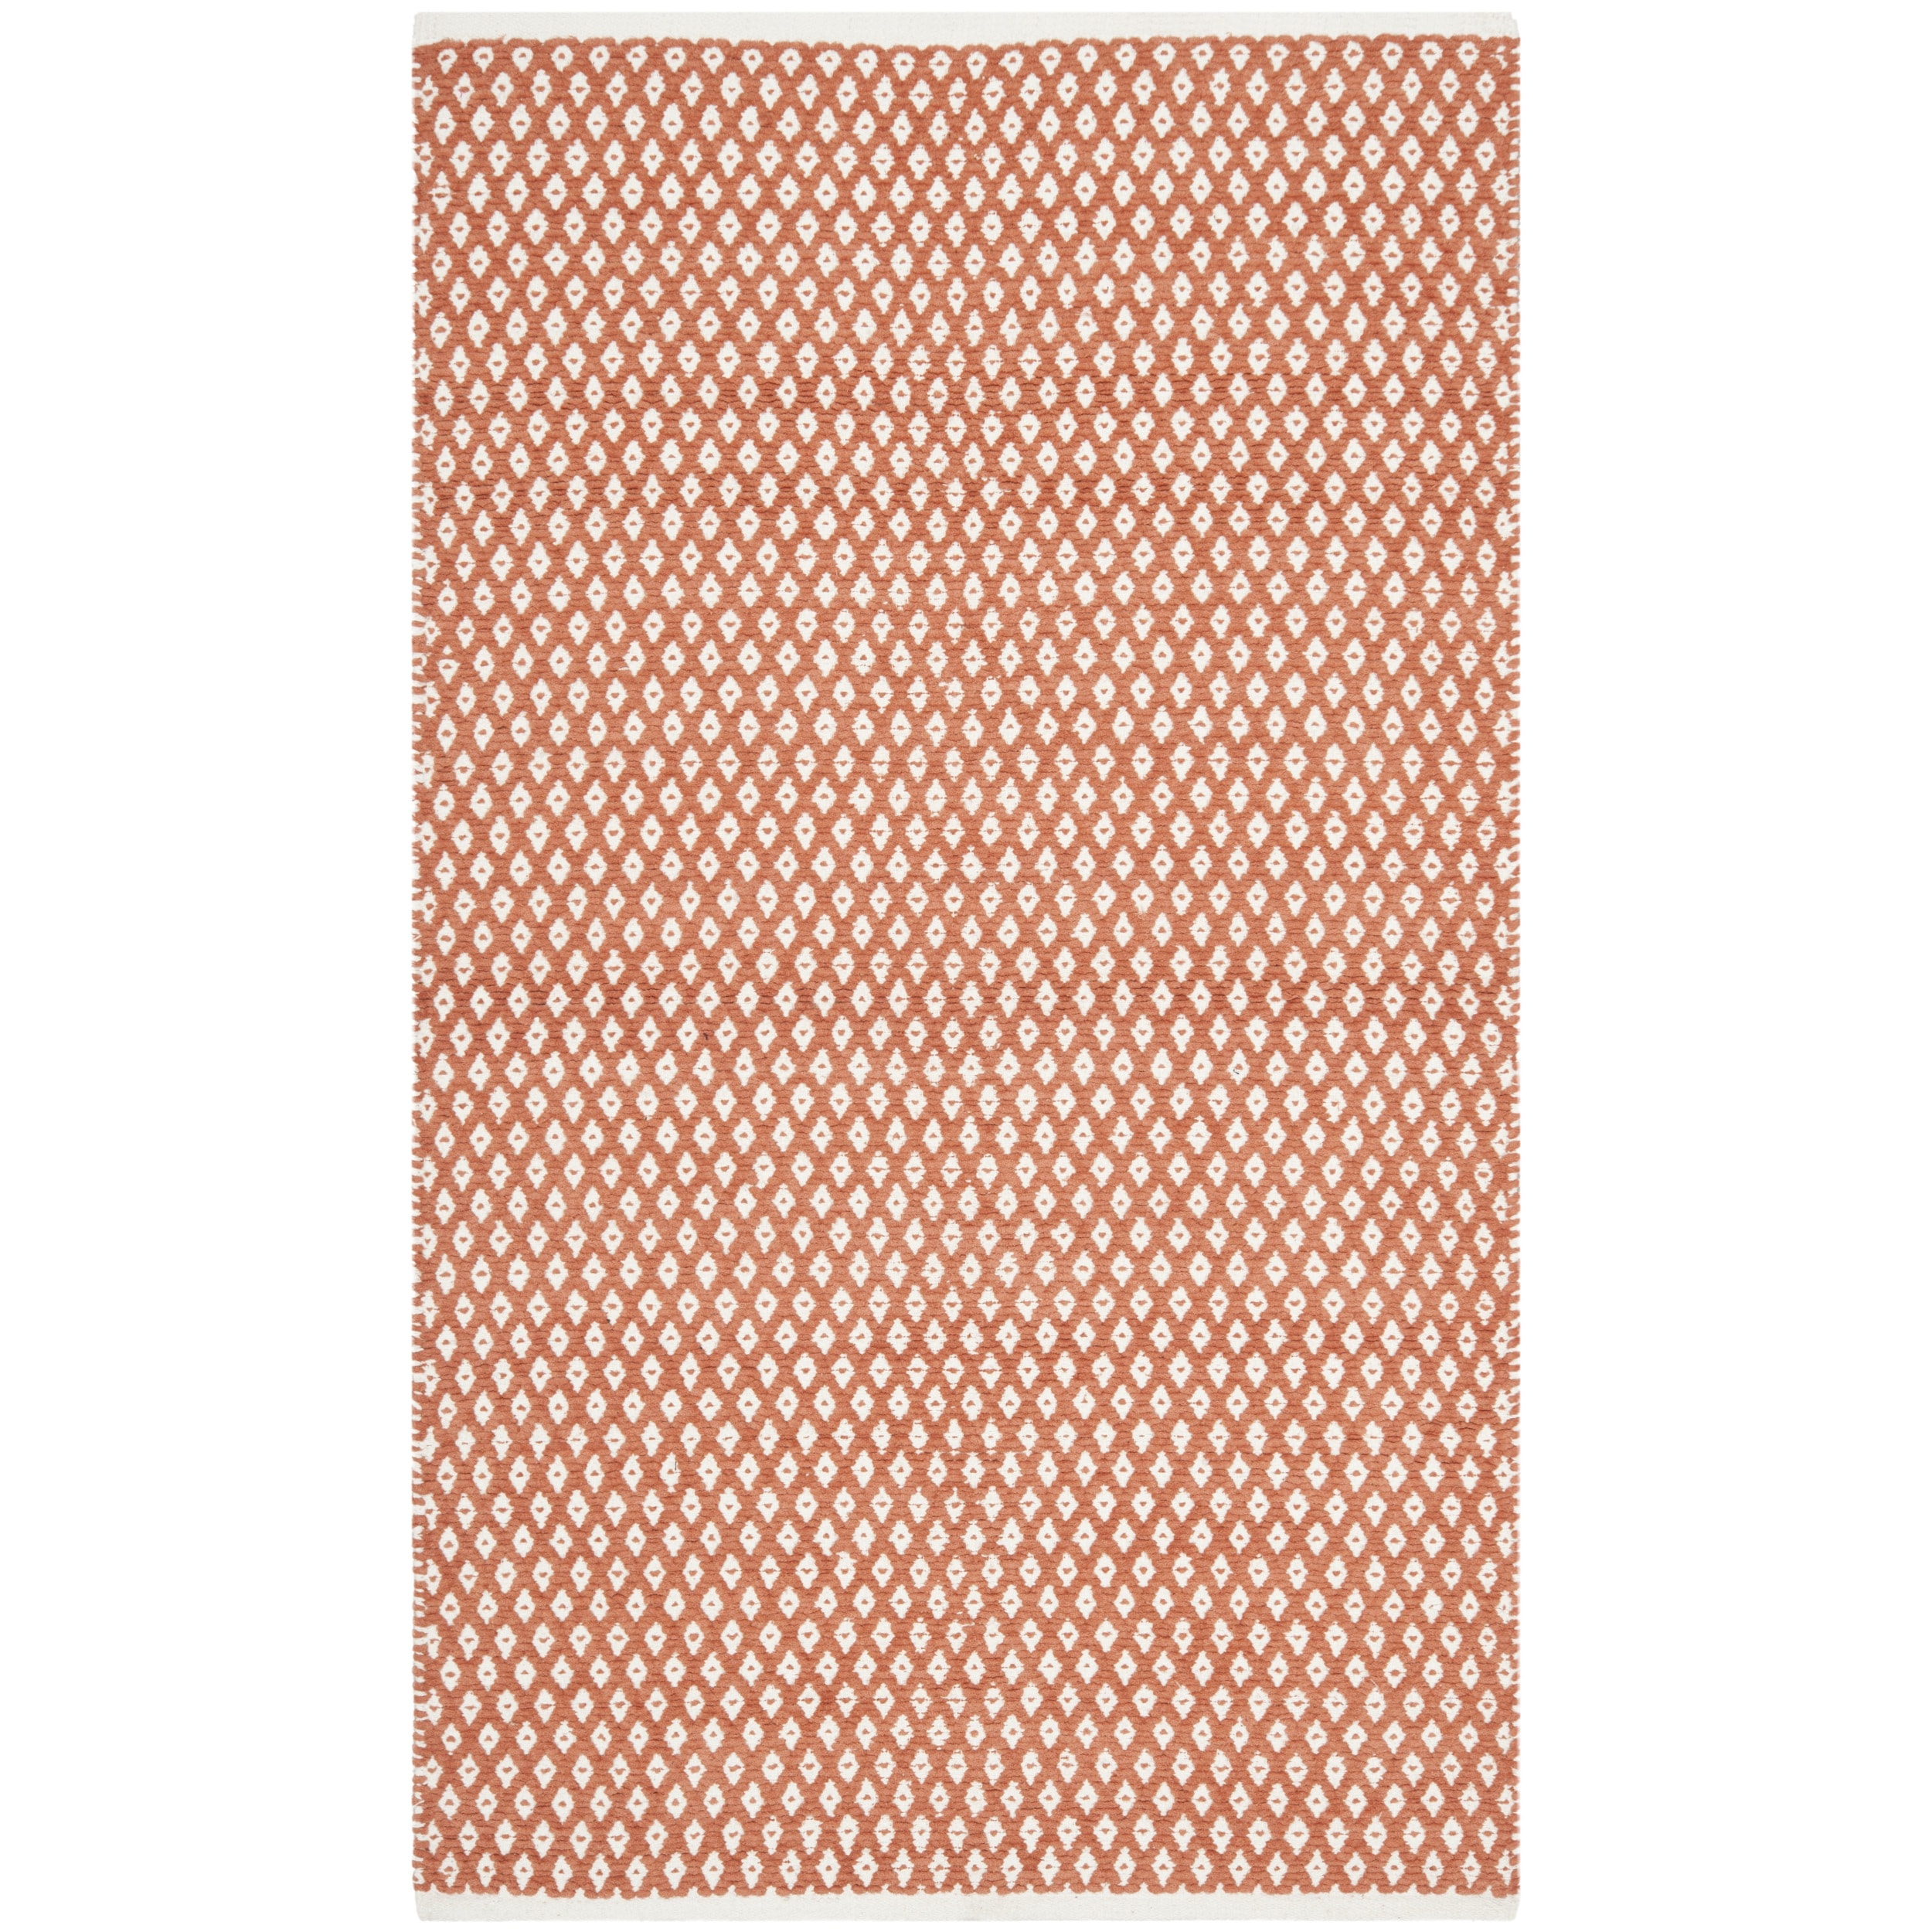 Outdoor Teppich Overstock Safavieh Hand Loomed Moroccan Orange Cotton Rug 8 39 X 10